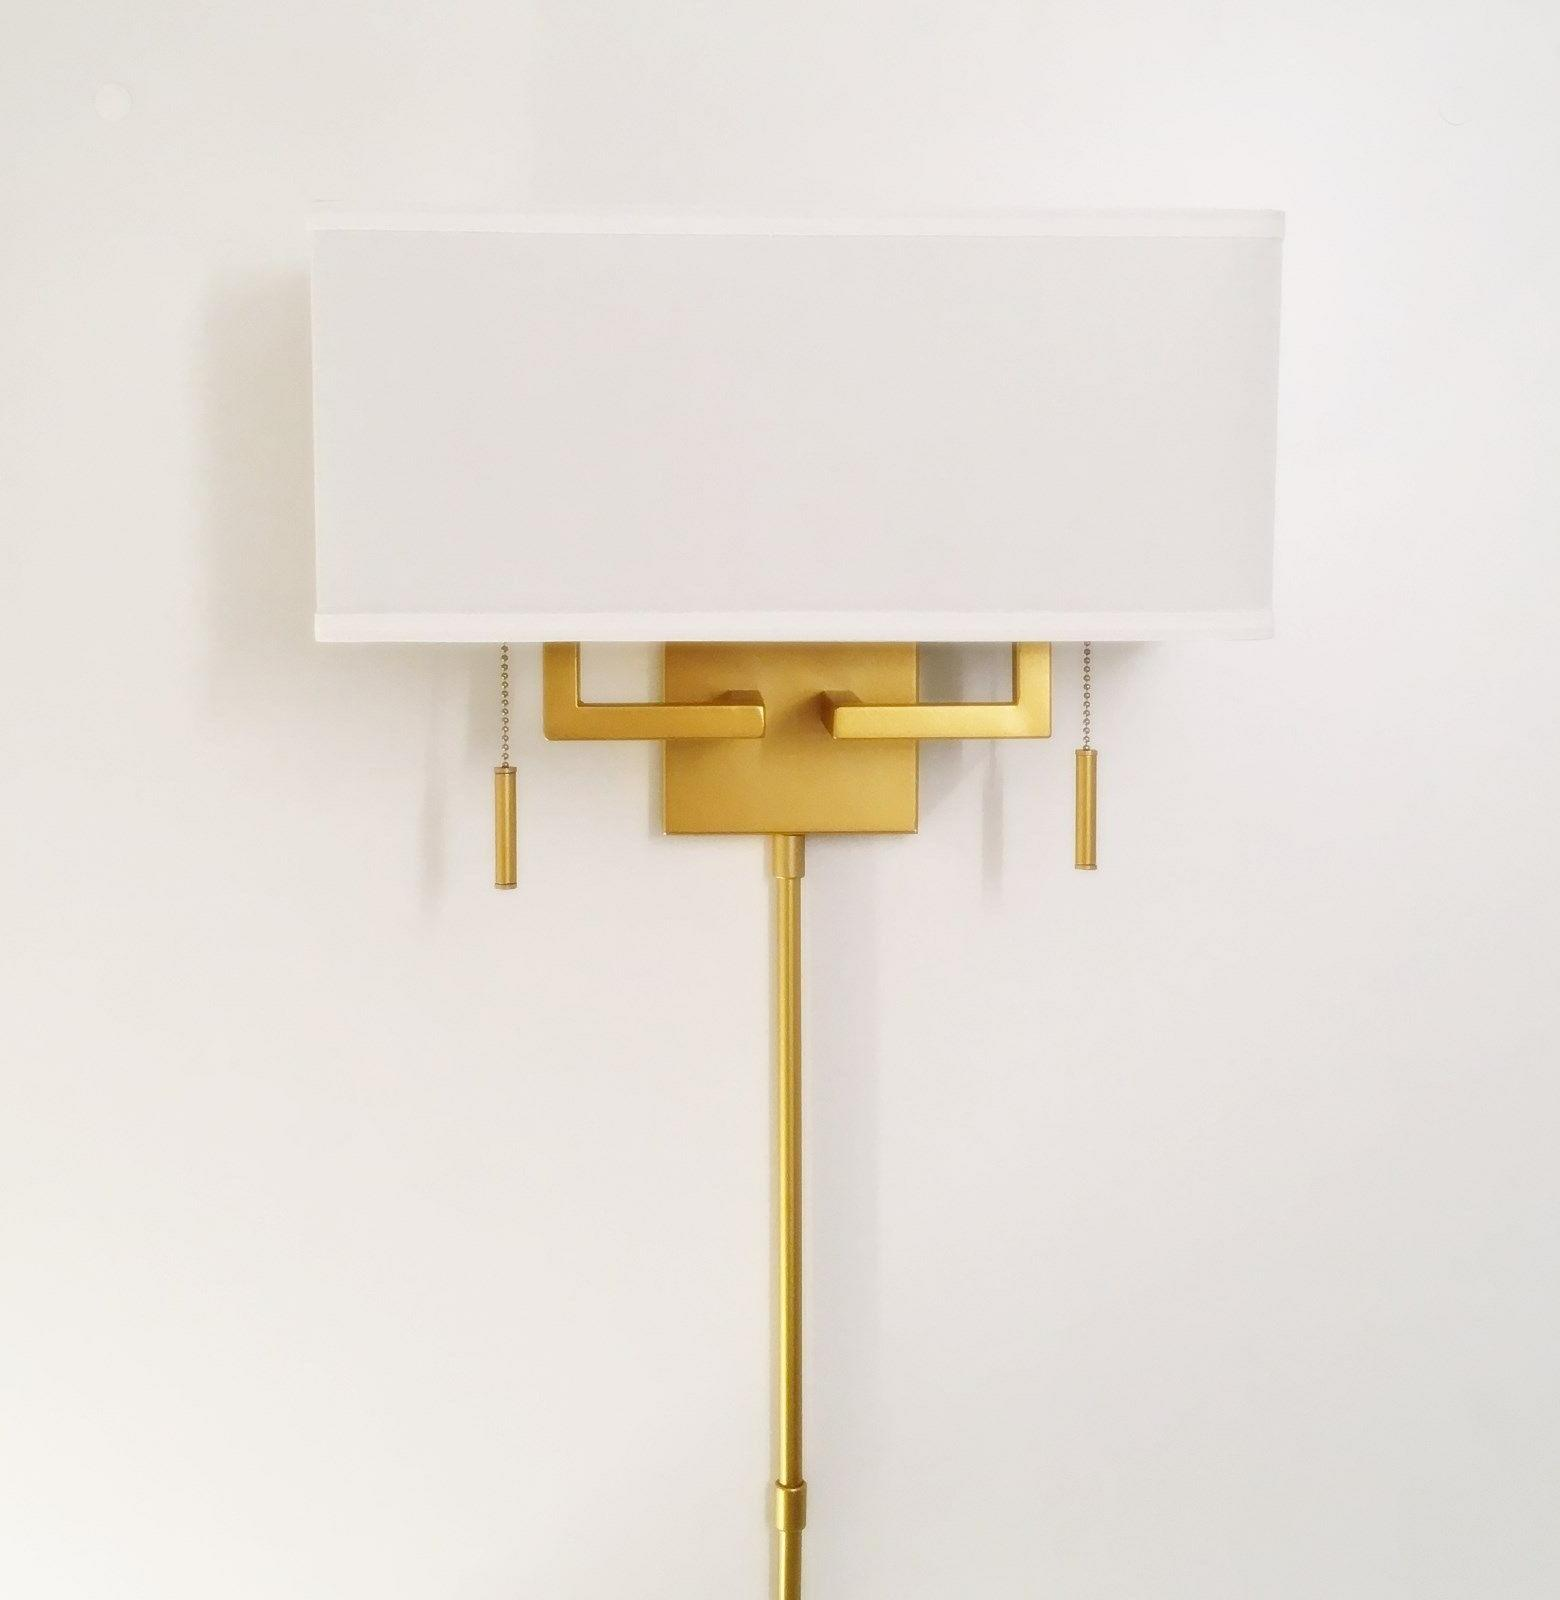 Matte Modern Wall Sconce with Rect. Shade, Hardwire